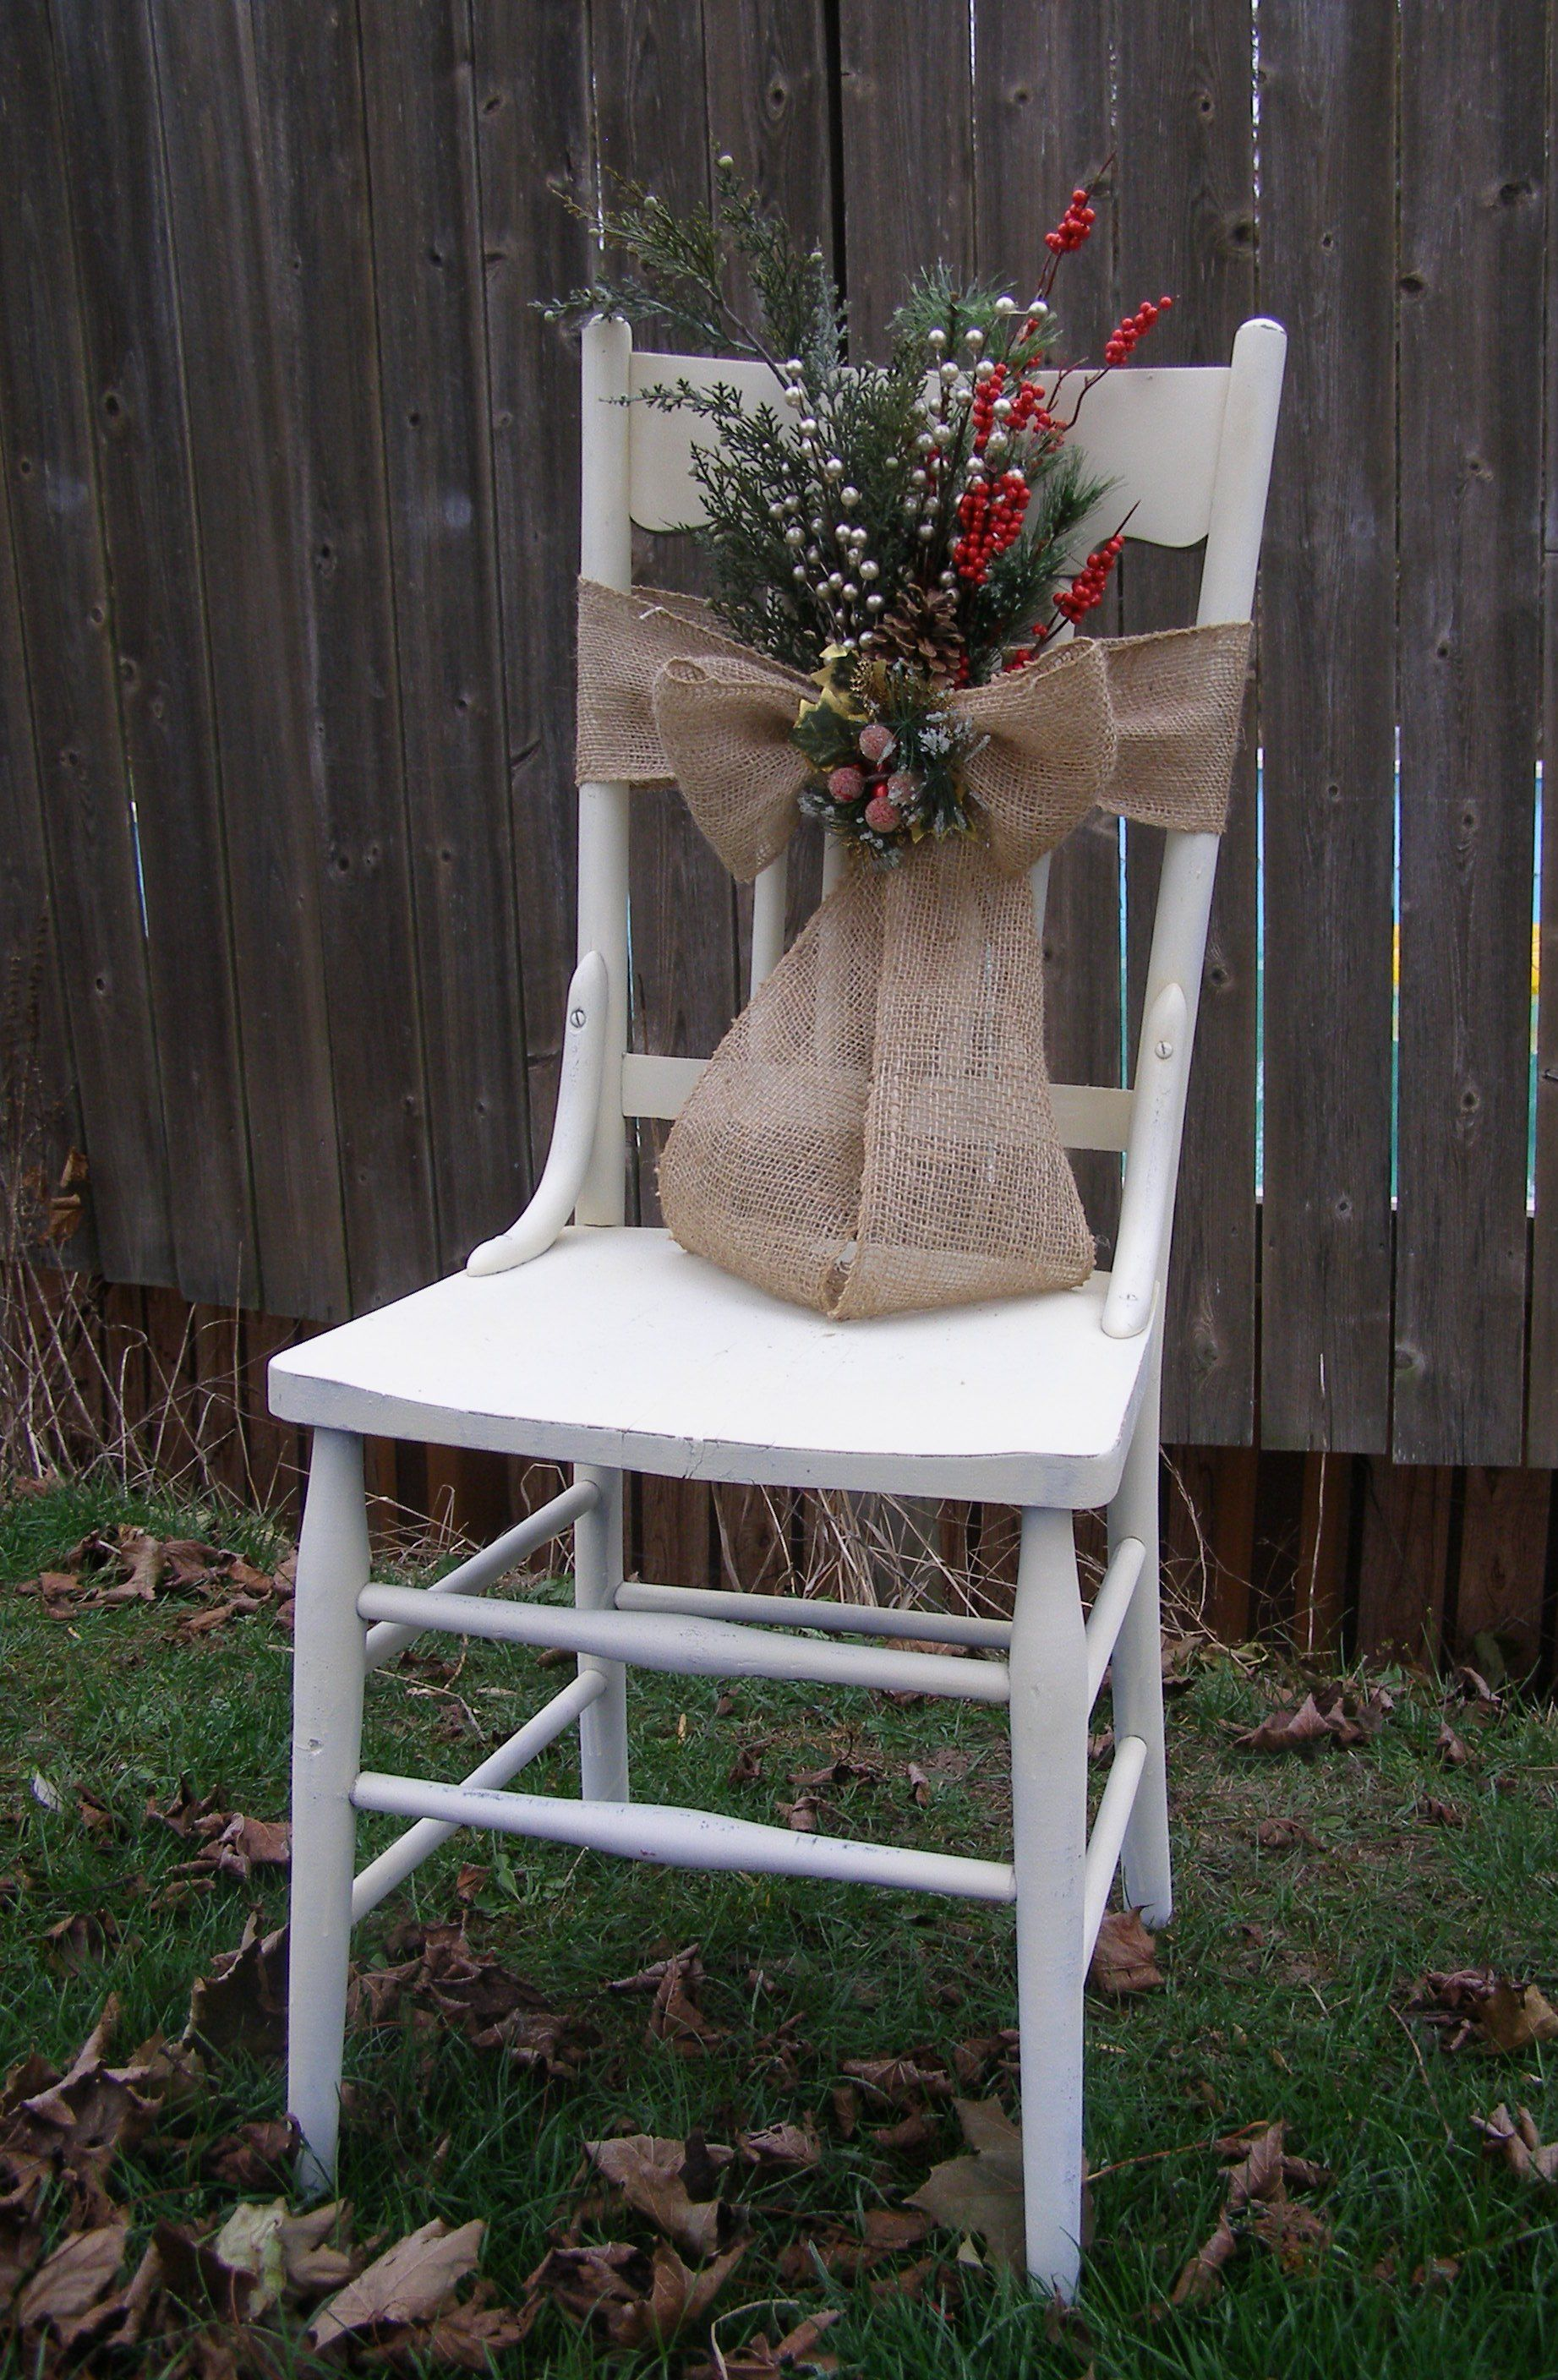 Merry Christmas Chair Covers Rattan Cushion Vintage With Winter Greens And Berries Those